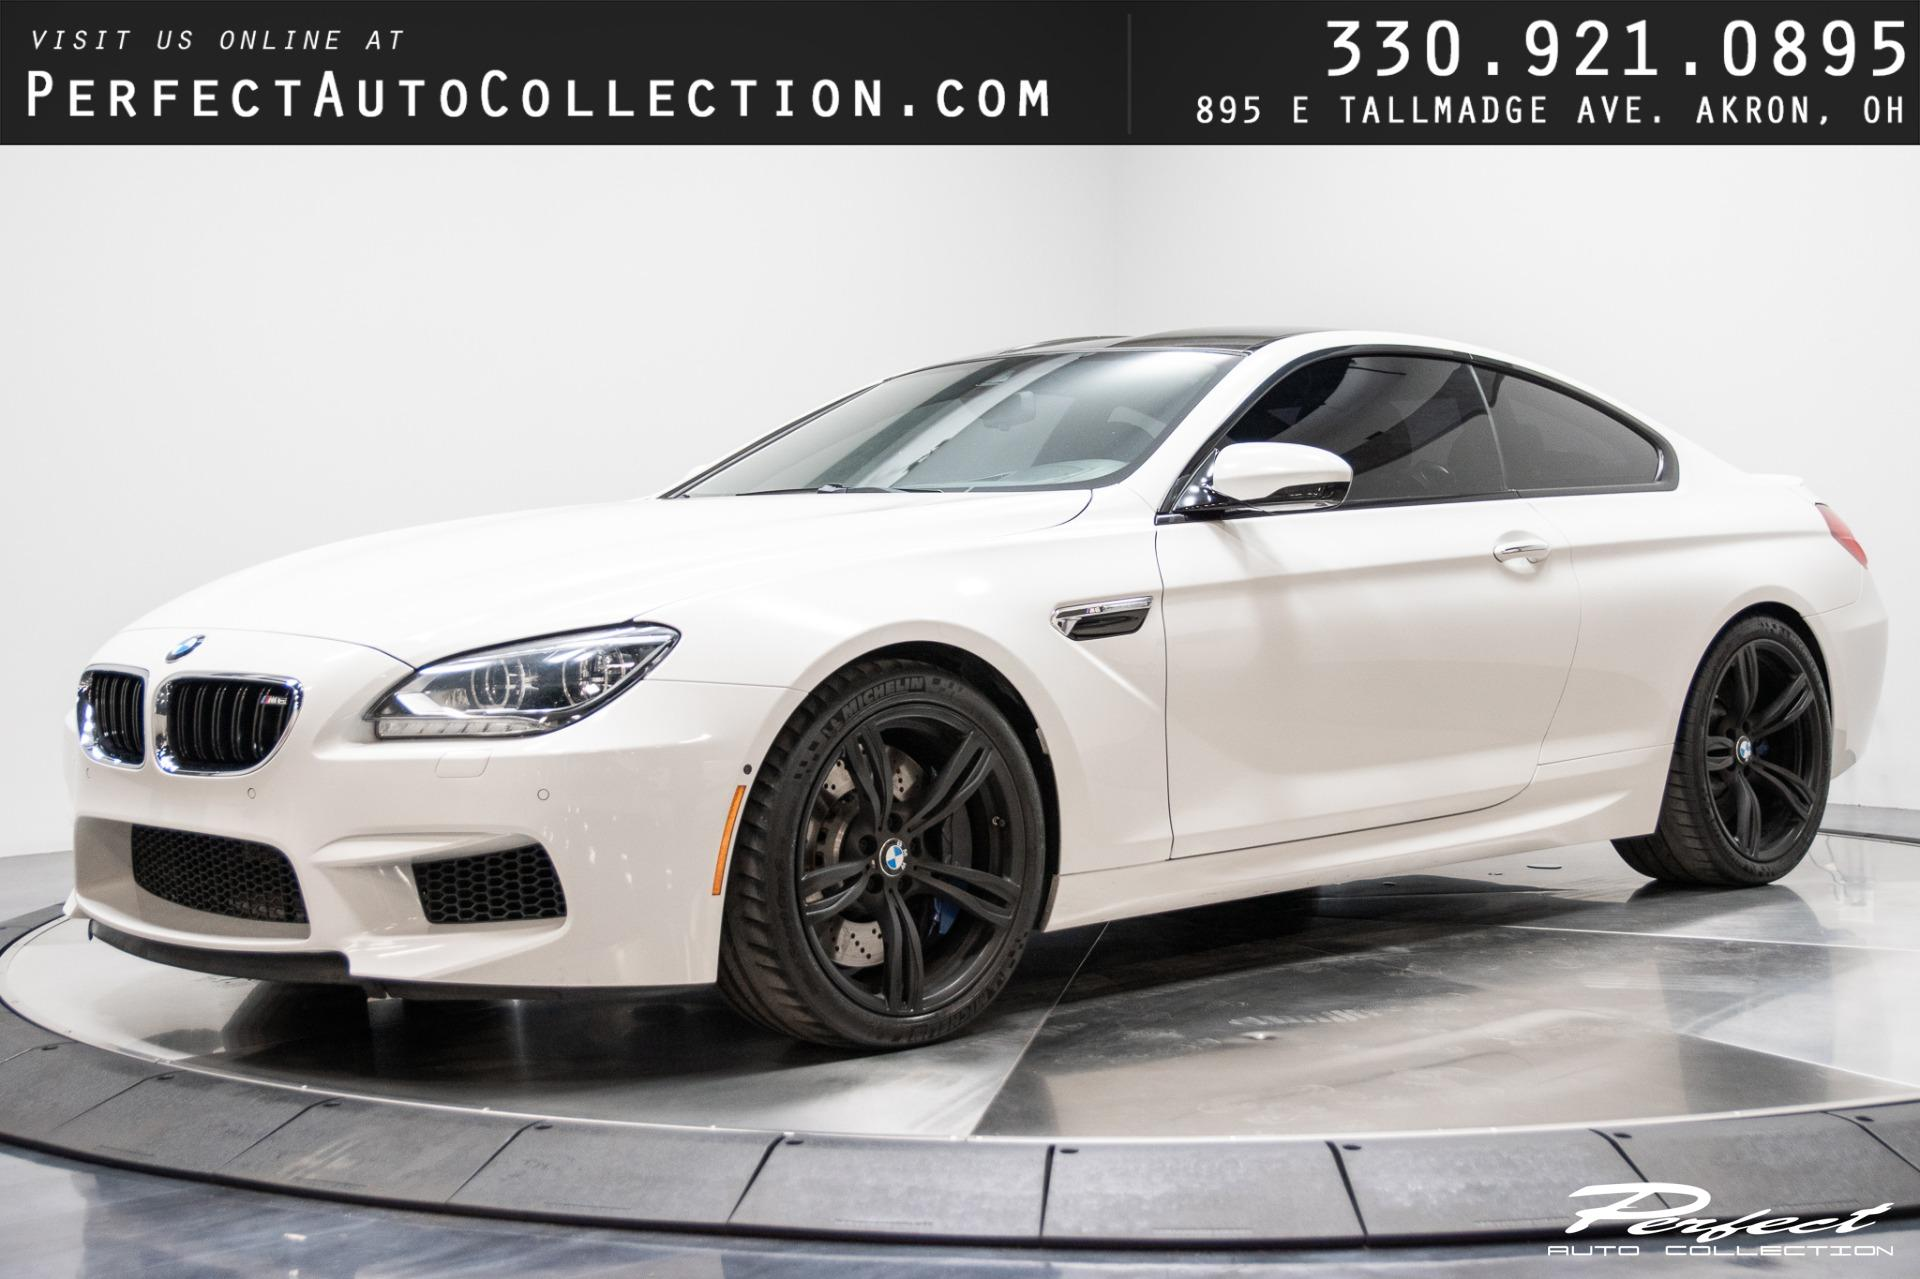 Used 2013 BMW M6 Base for sale $44,493 at Perfect Auto Collection in Akron OH 44310 1